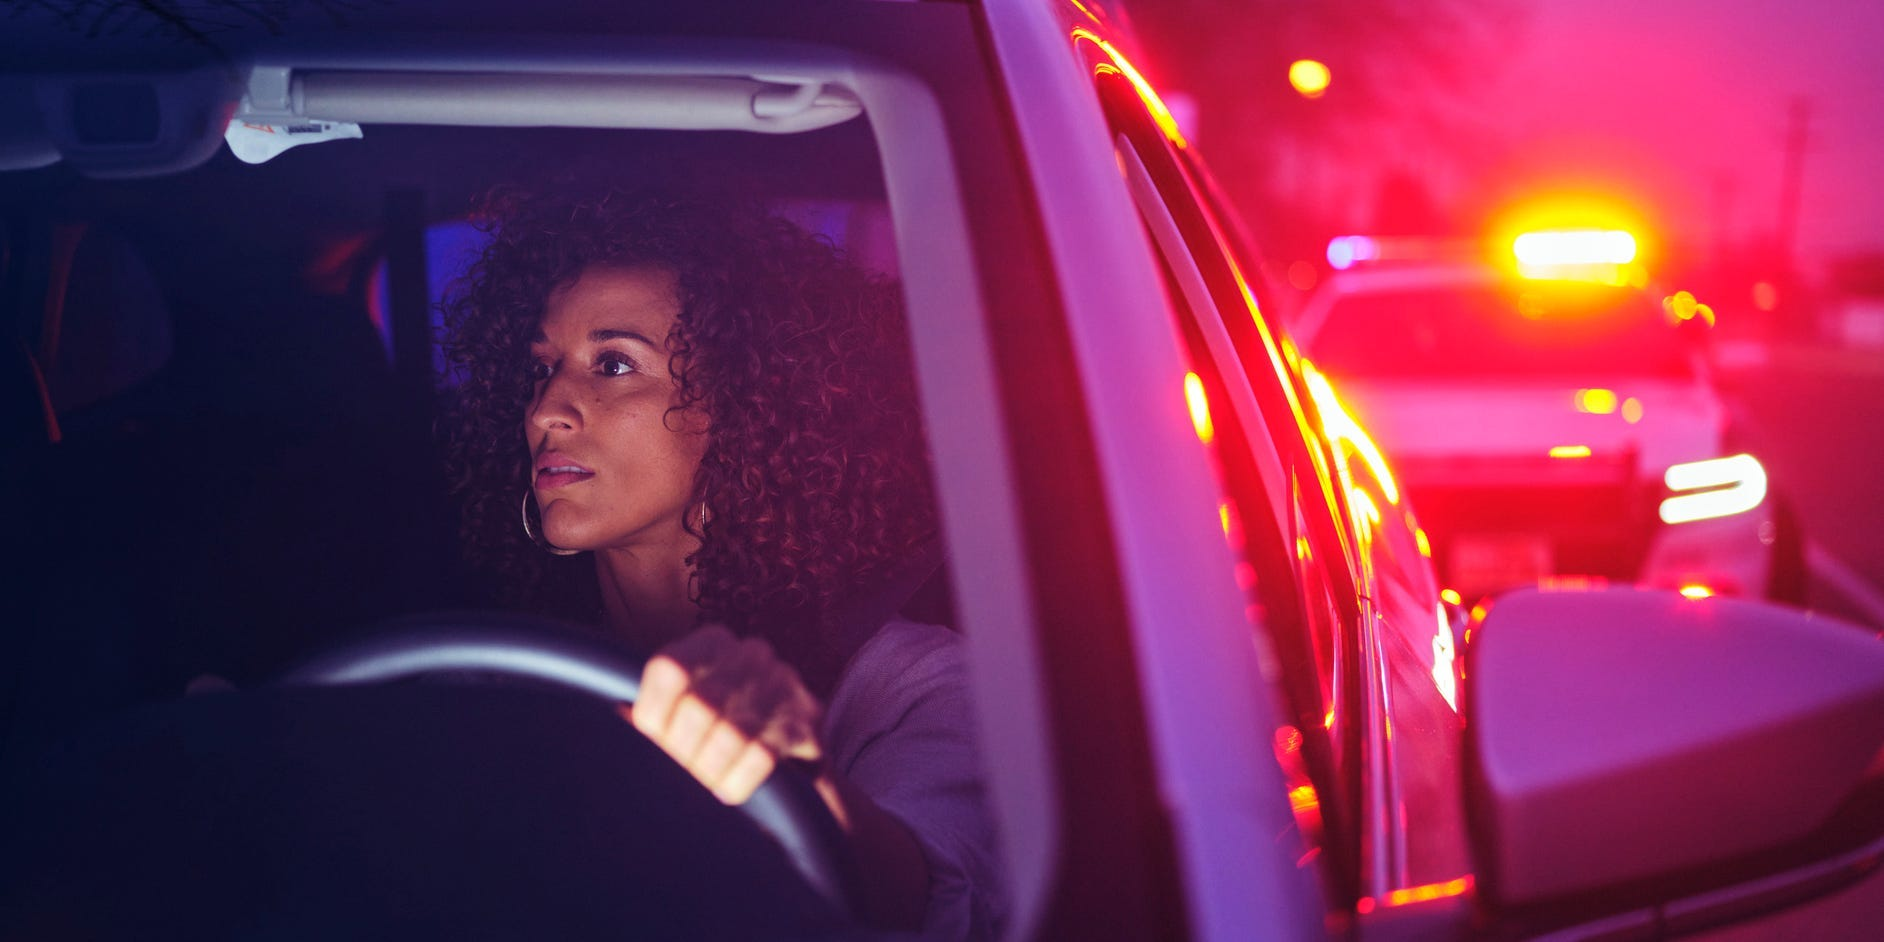 Woman in traffic stop